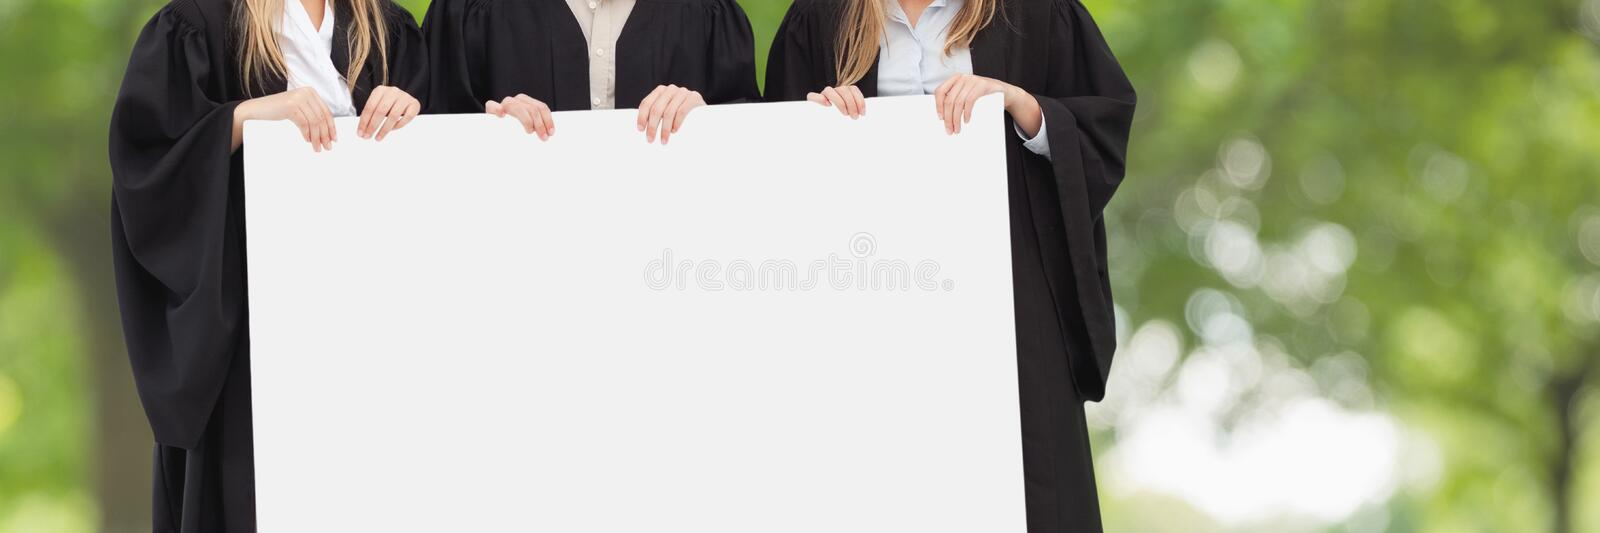 Graduated people holding a blank card against green blurred background royalty free stock photos